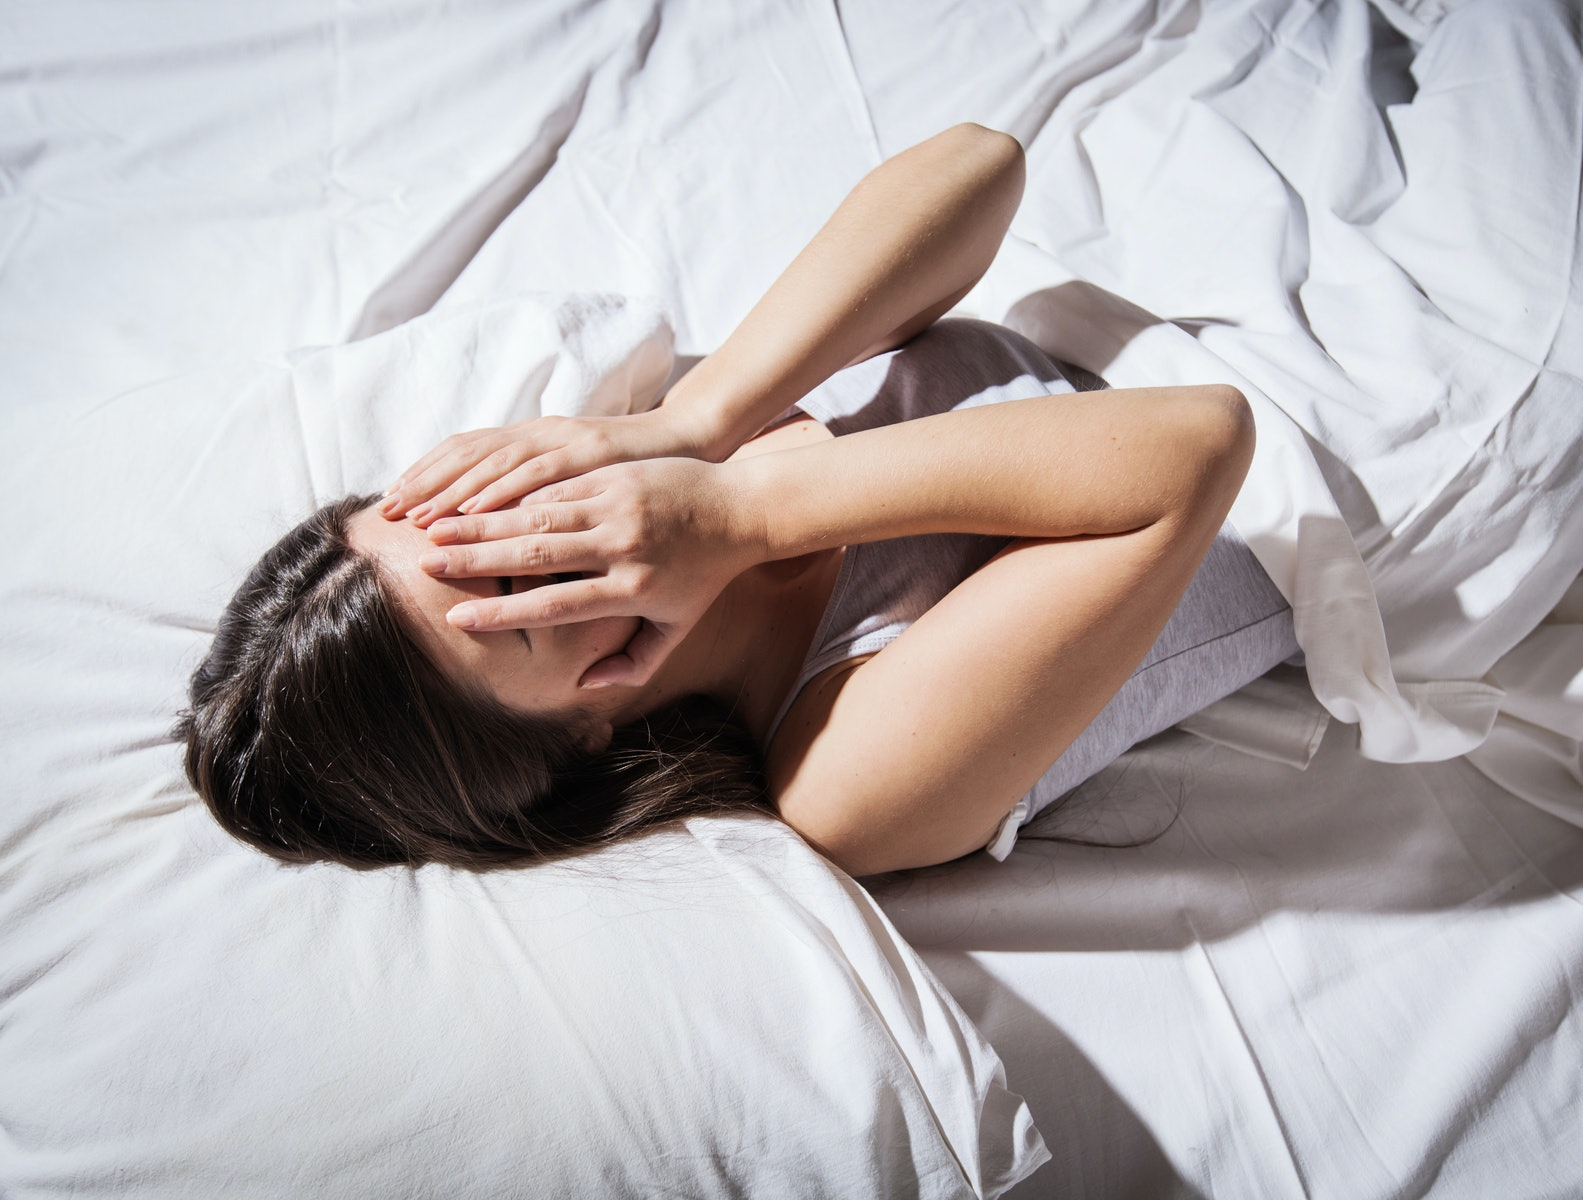 Why Do I Have Trouble Falling Asleep? Your Brain Can Be Awake